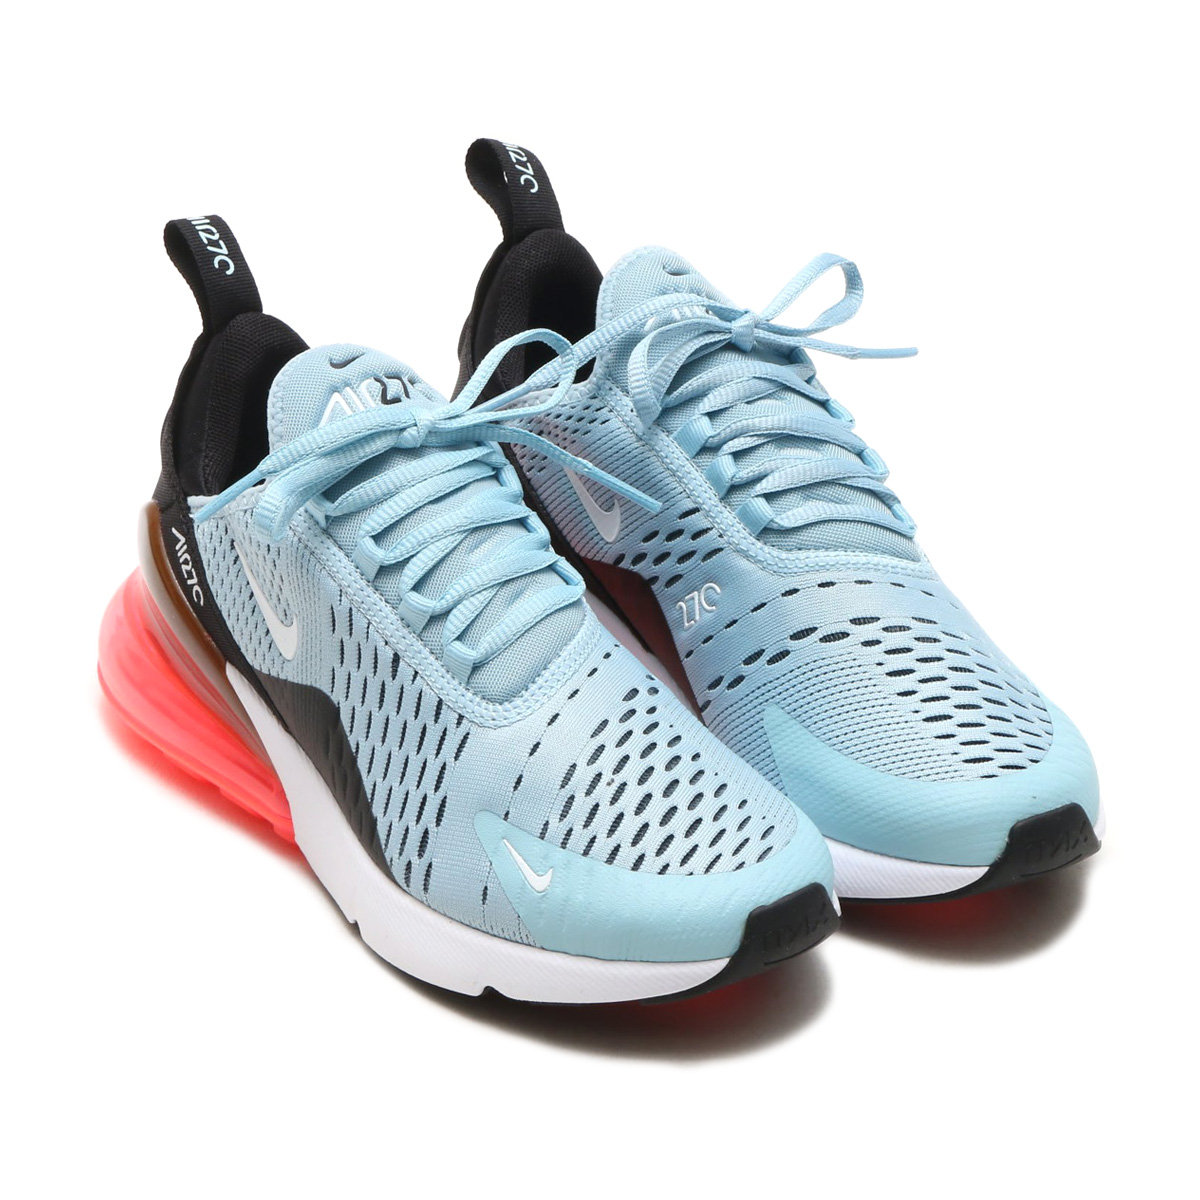 check out 8e14e 216ec NIKE W AIR MAX 270 (Nike women Air Max 270) (OCEAN BLISSWHITE-BLACK-HOT  PUNCH) 18SP-S